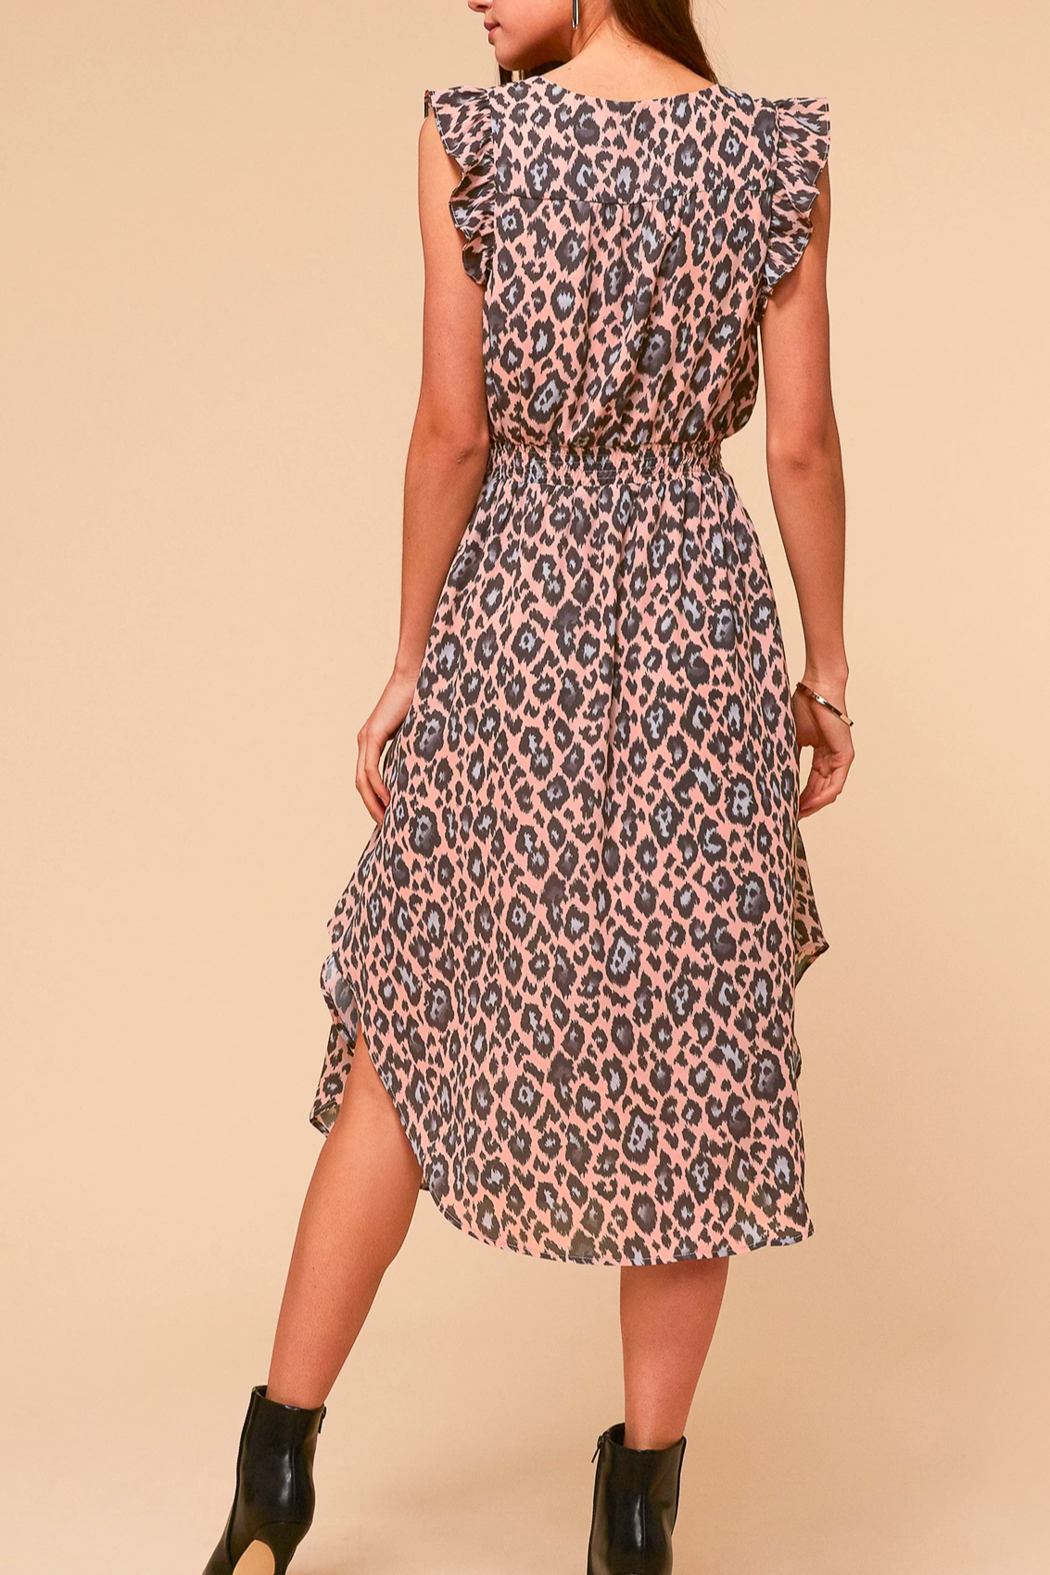 Adelyn Rae Camille Animal-Print Dress - Front Full Image